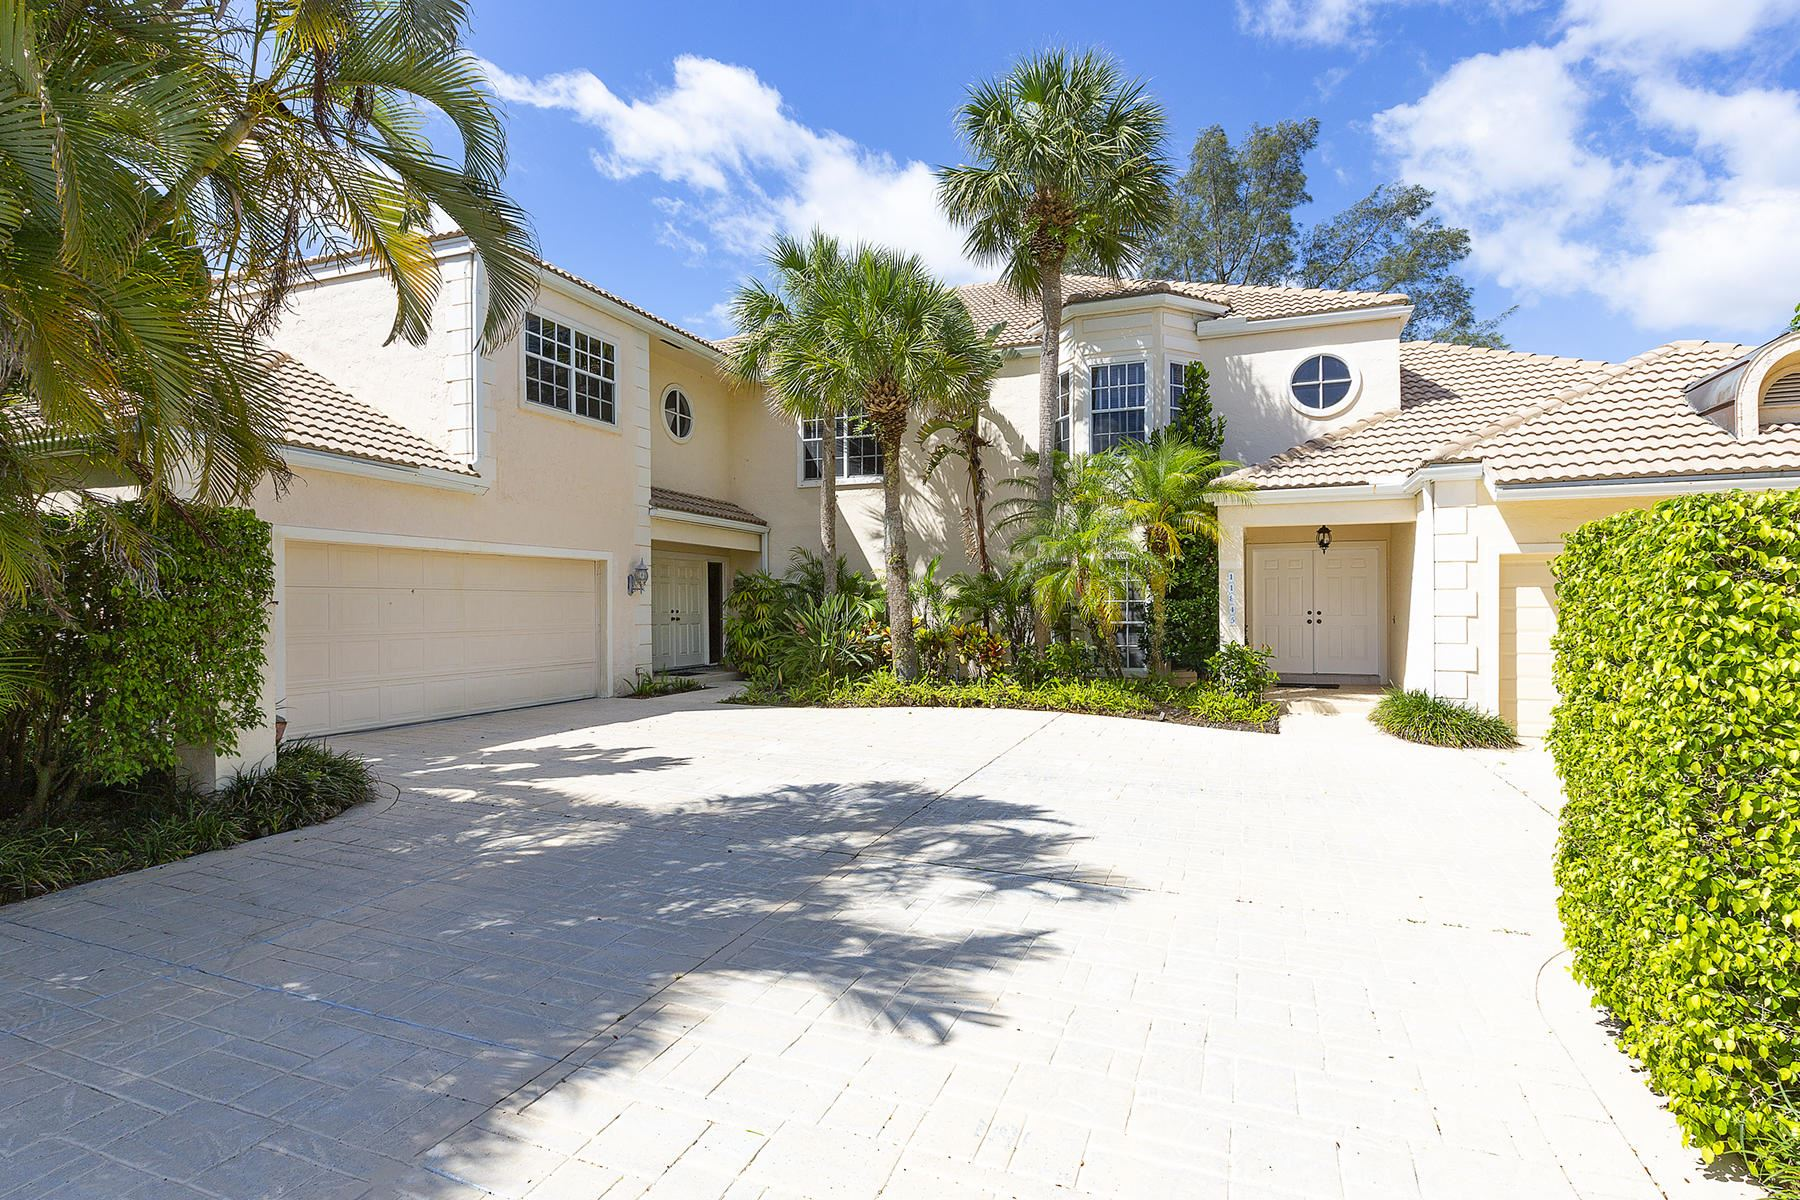 11847 Pebblewood Drive, Wellington, FL 33414 - MLS#: RX-10716959